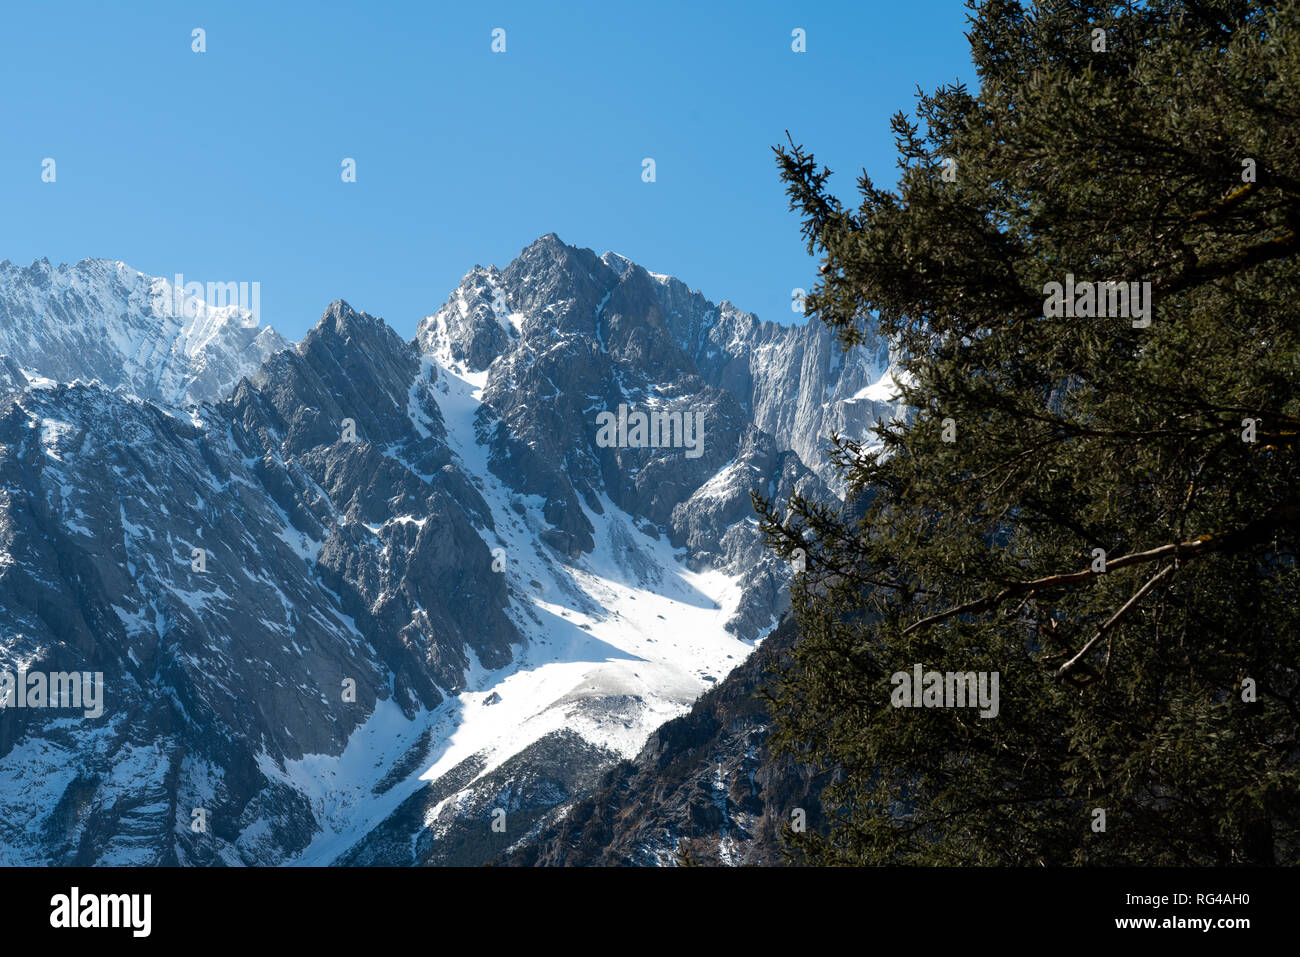 Jade dragon snow mountain situated in Yulong, Yunnan China. The snow covered mountain with rocky peaks with trees in the foreground giving a dramatic Stock Photo